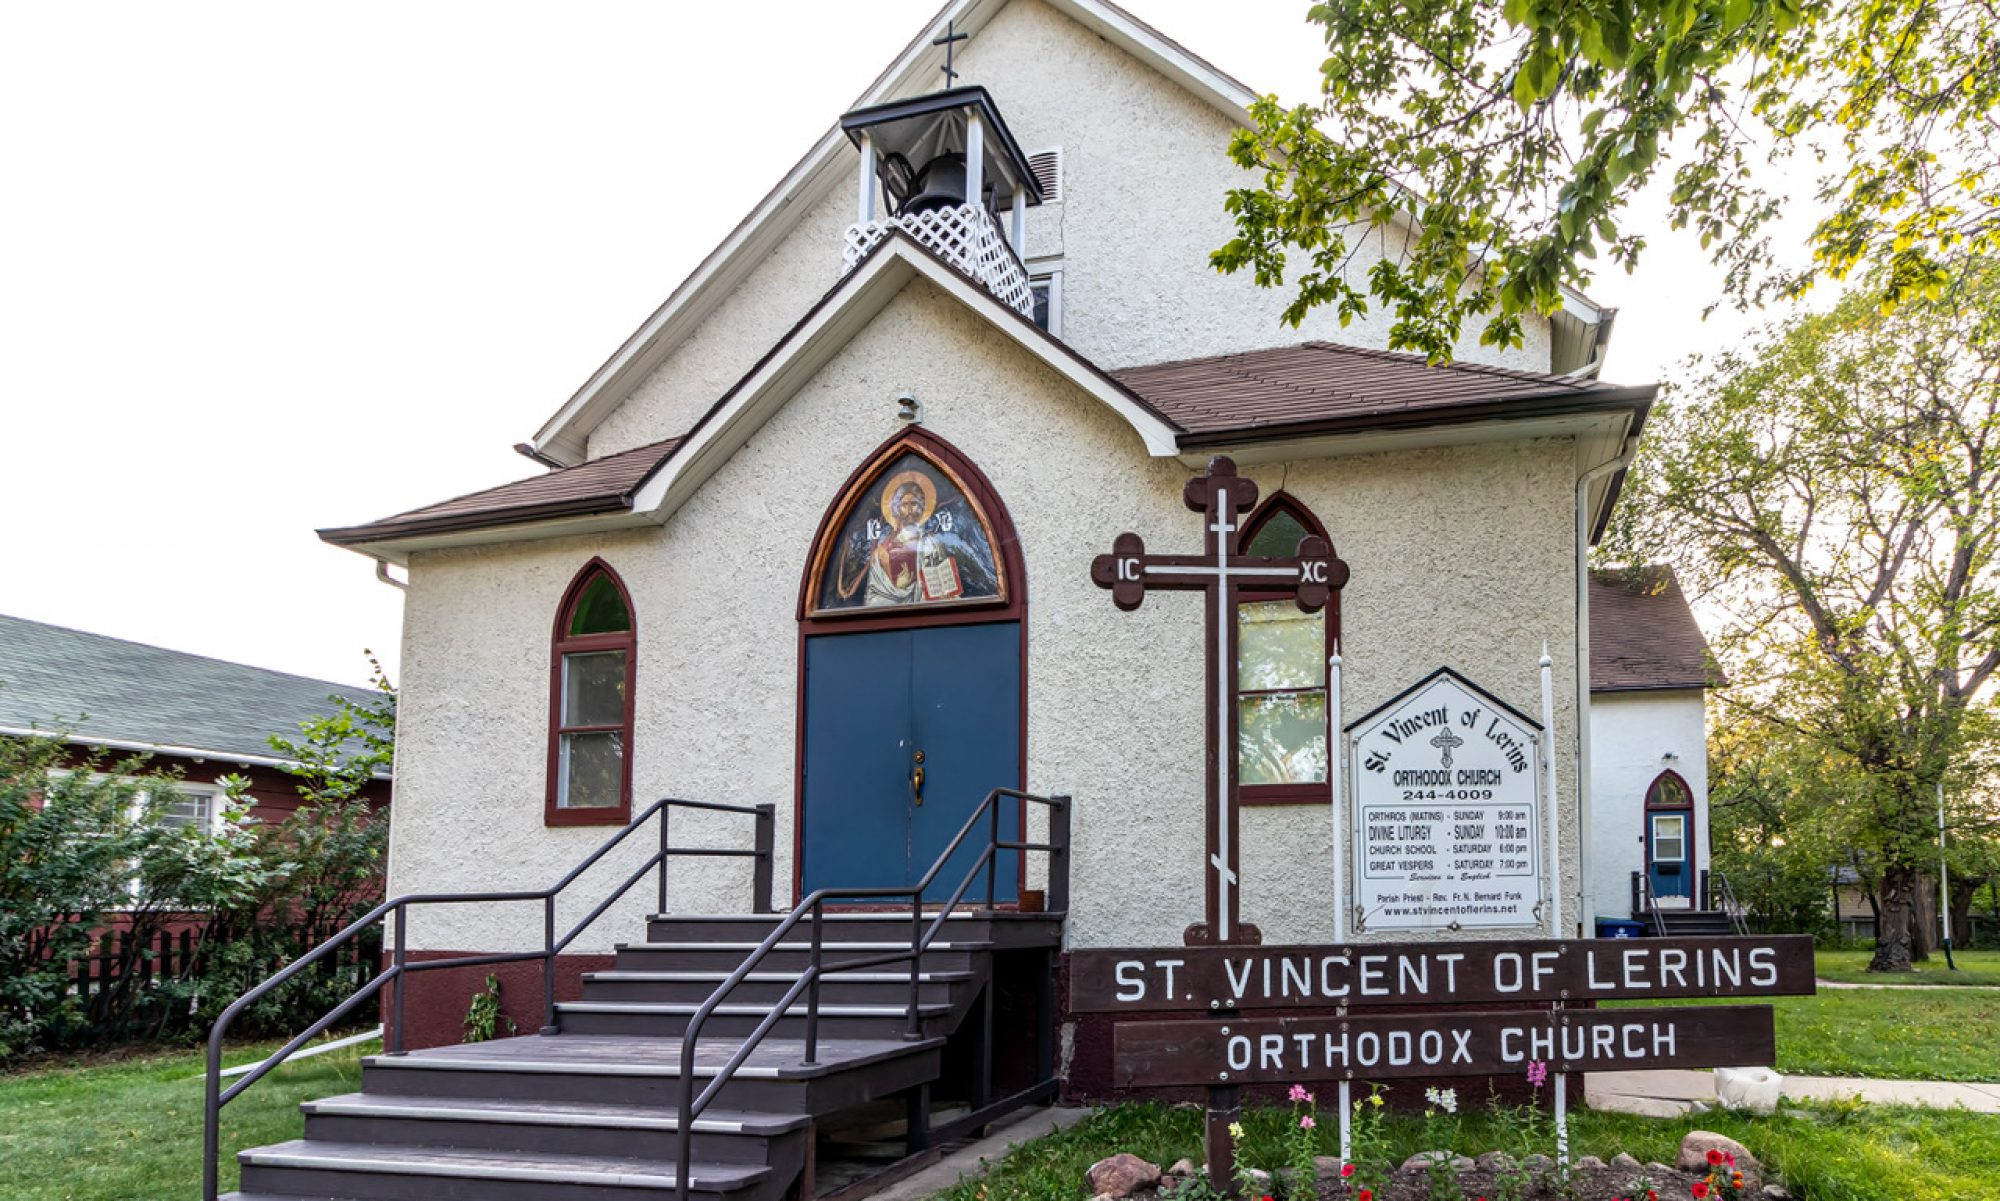 St. Vincent of Lerins Orthodox Church, Saskatoon